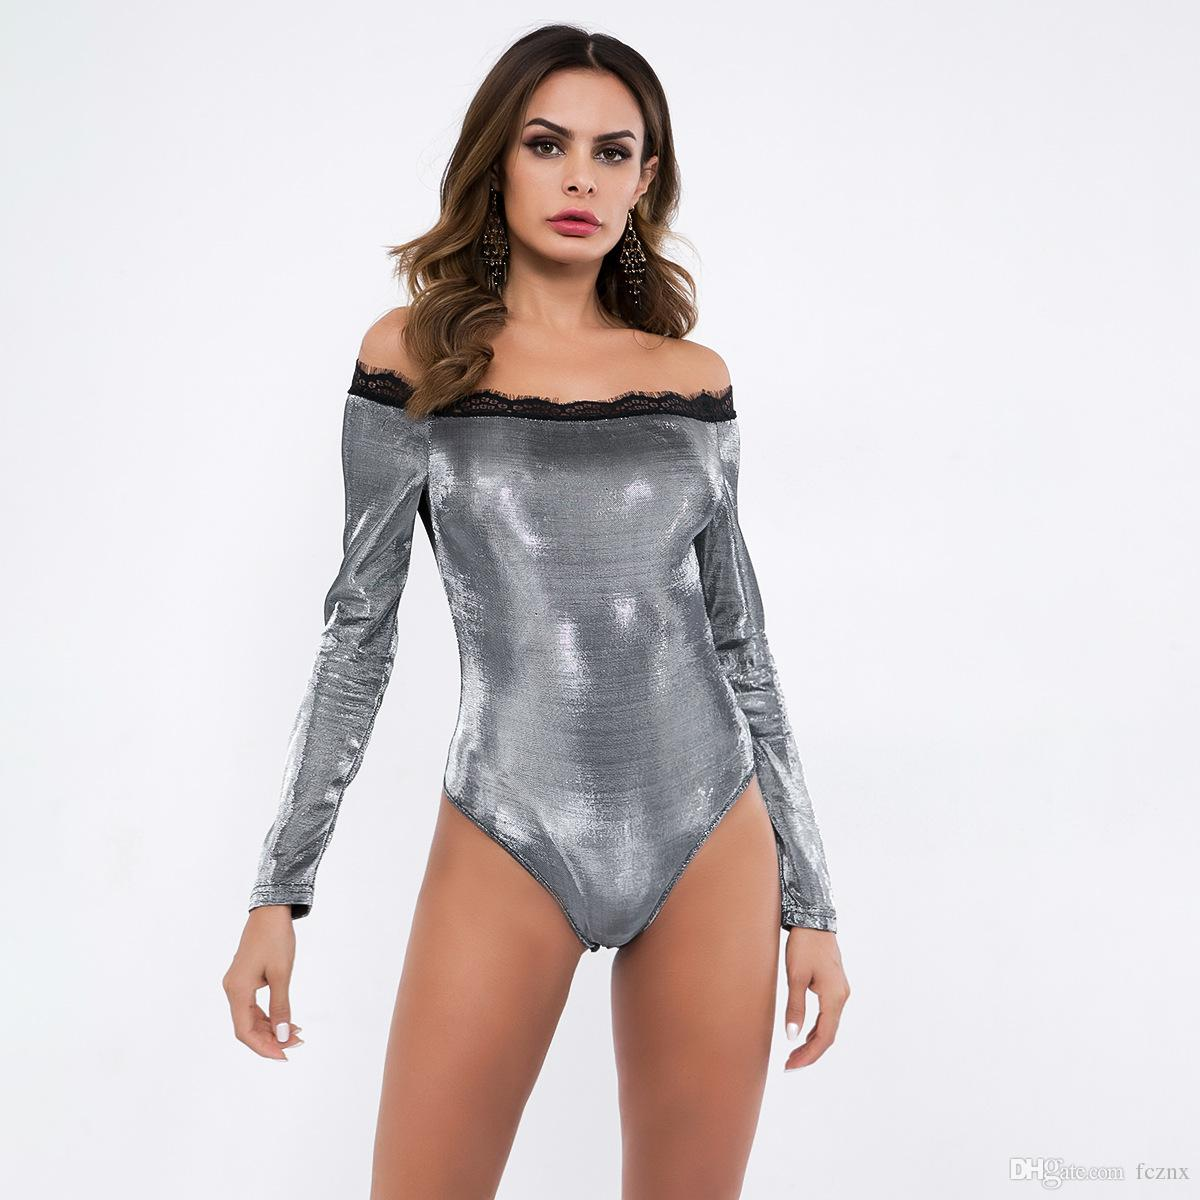 3b8c52d191 2019 2019 Women Clothing Long Sleeve Slash Neck Lace Spliced Solid  Jumpsuits Rompers Female Sexy Fashion Slim Shiny Bodysuits P5652 From  Fcznx